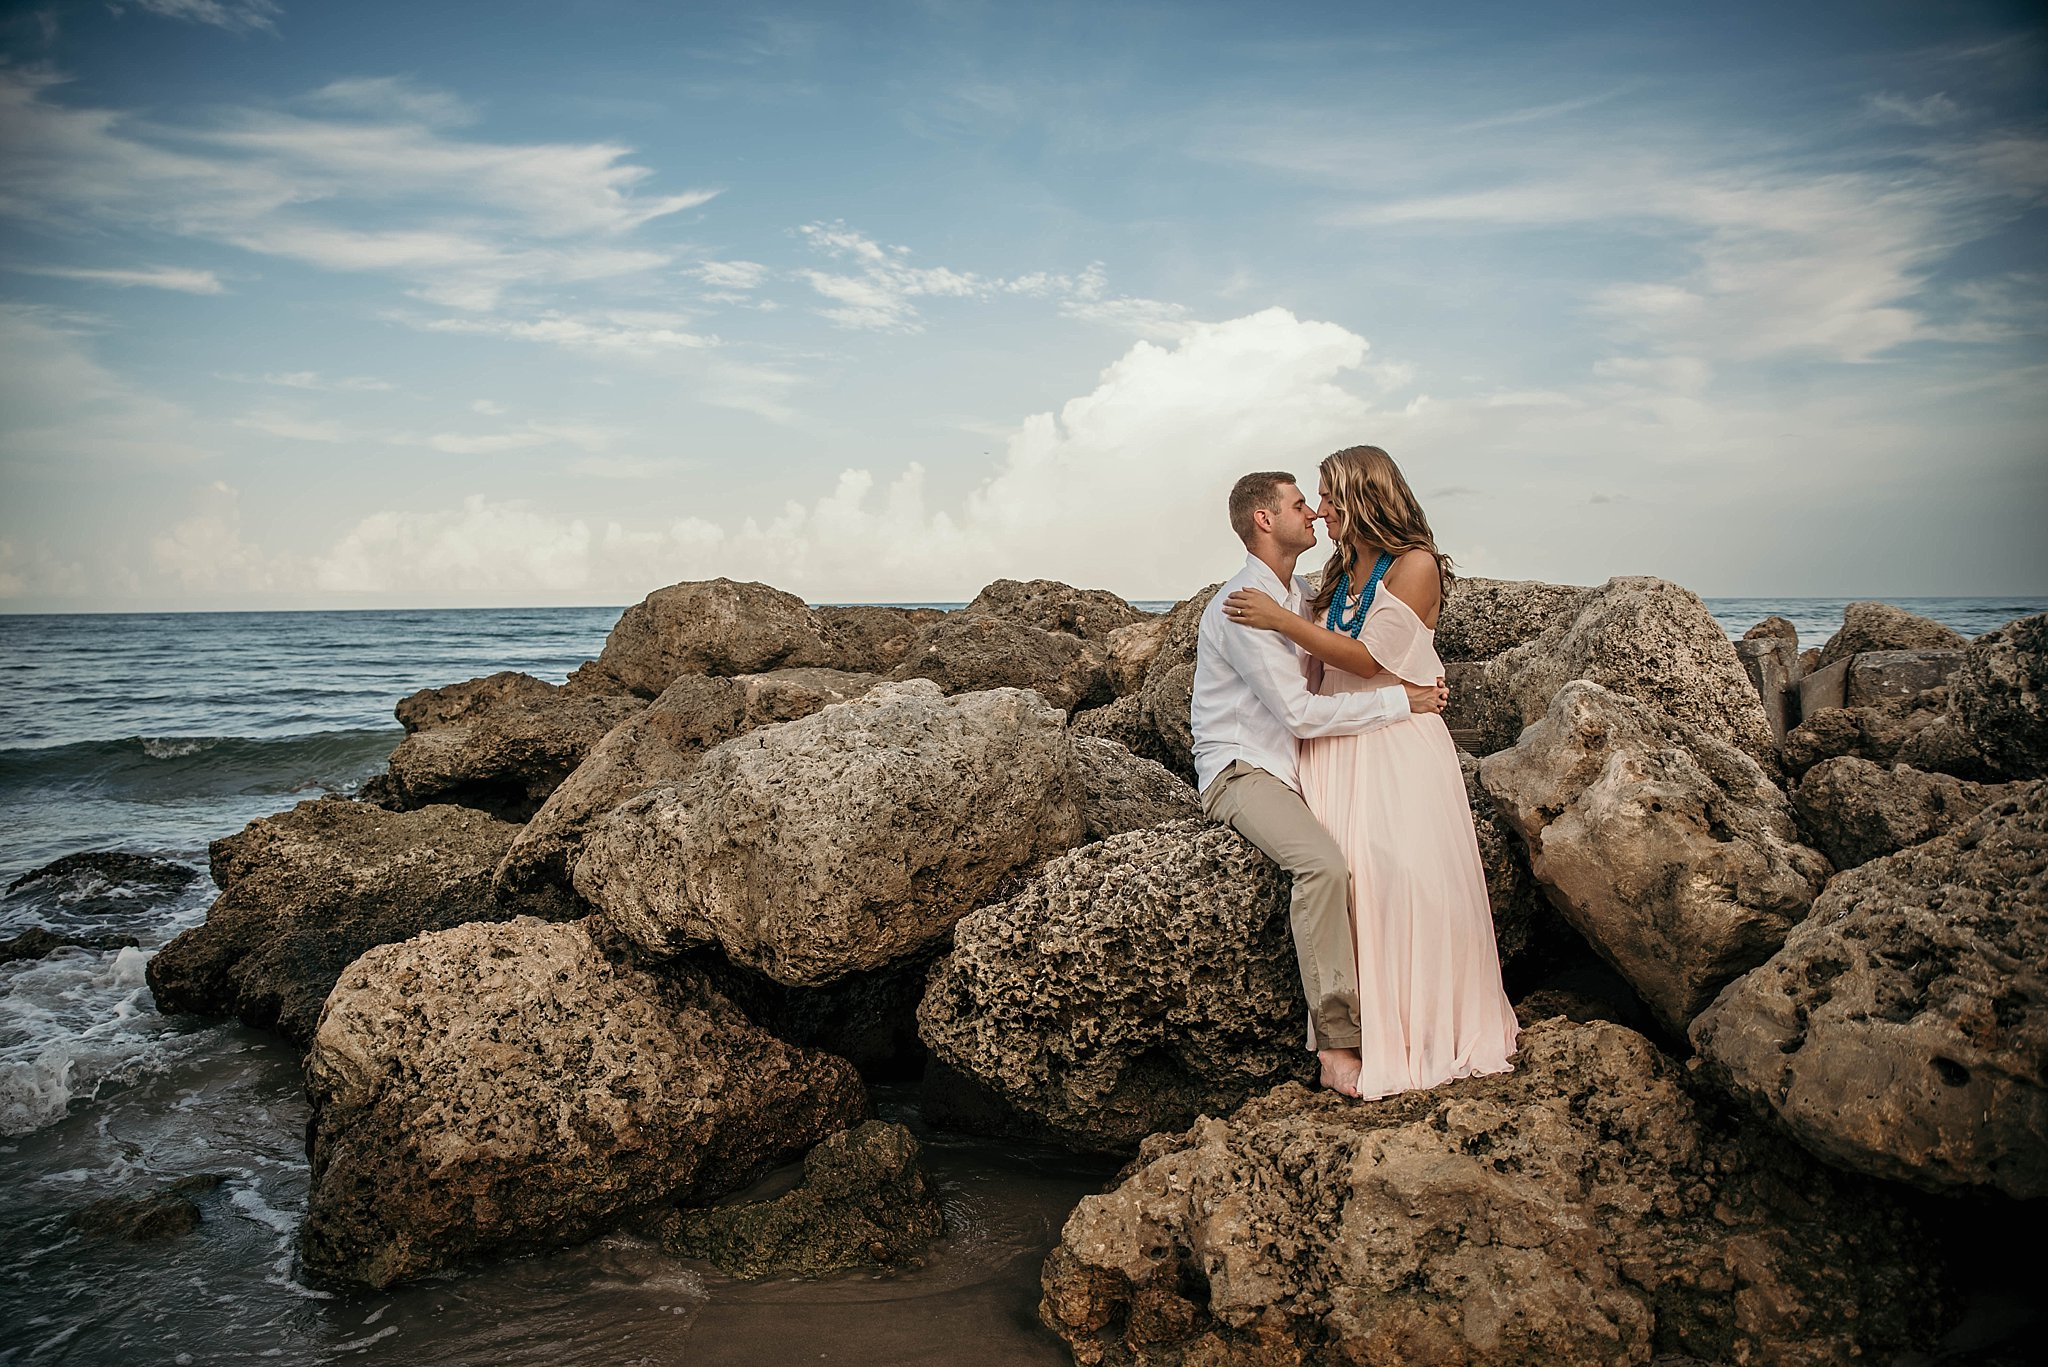 palm-beach-engagement-photos-florida-wedding-photographer_0019.jpg